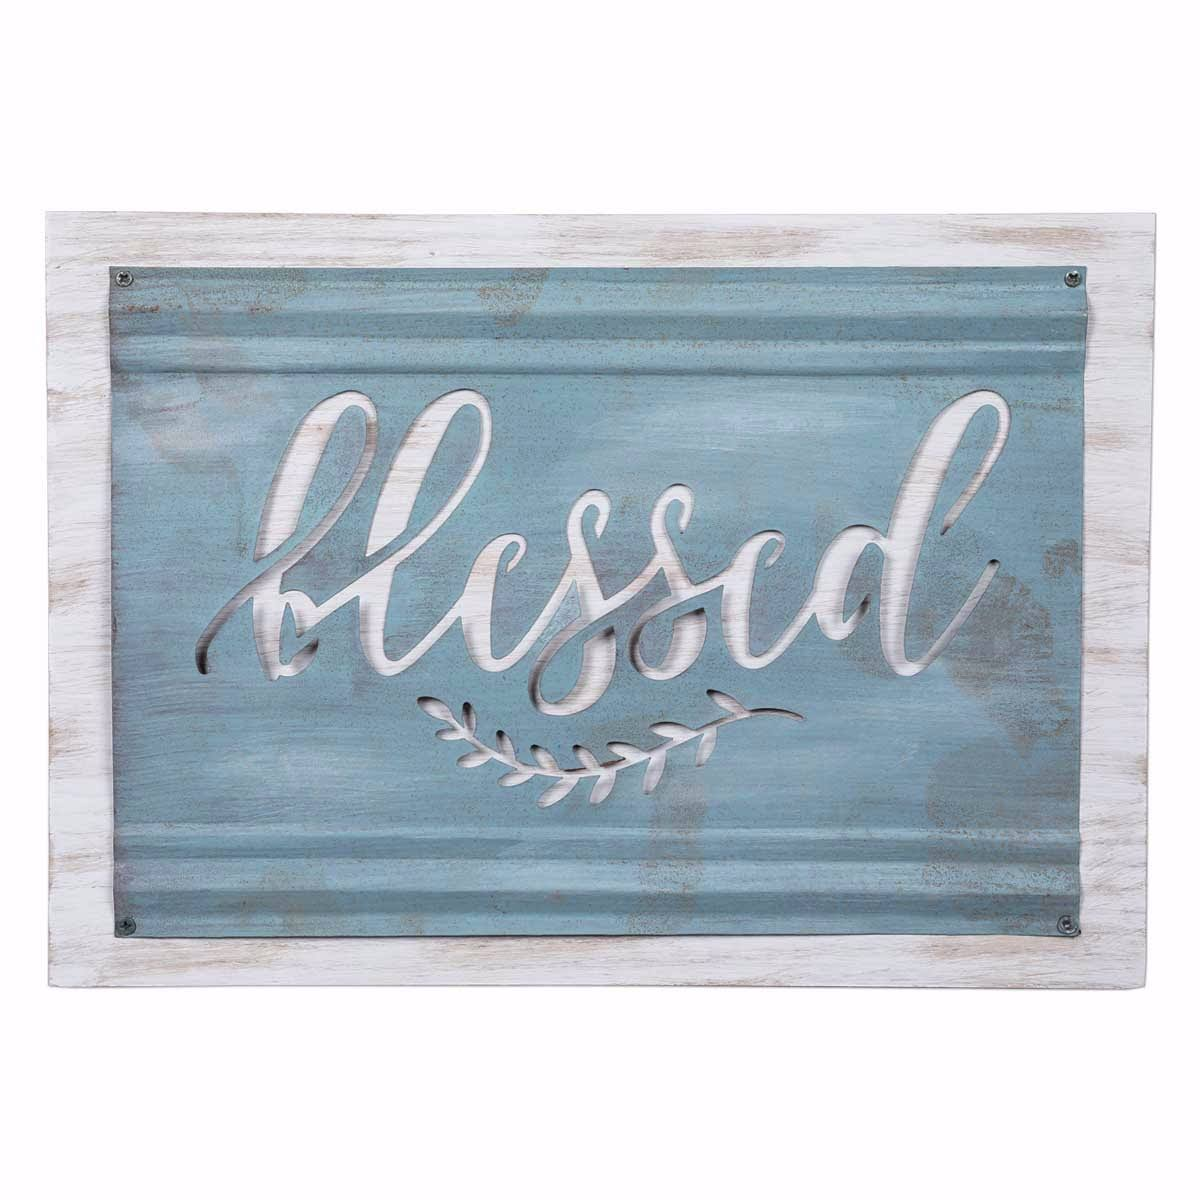 Brownlow Gift 165675 13.75 x 10 in. Blessed Acid Wash Sign Blue & Grey